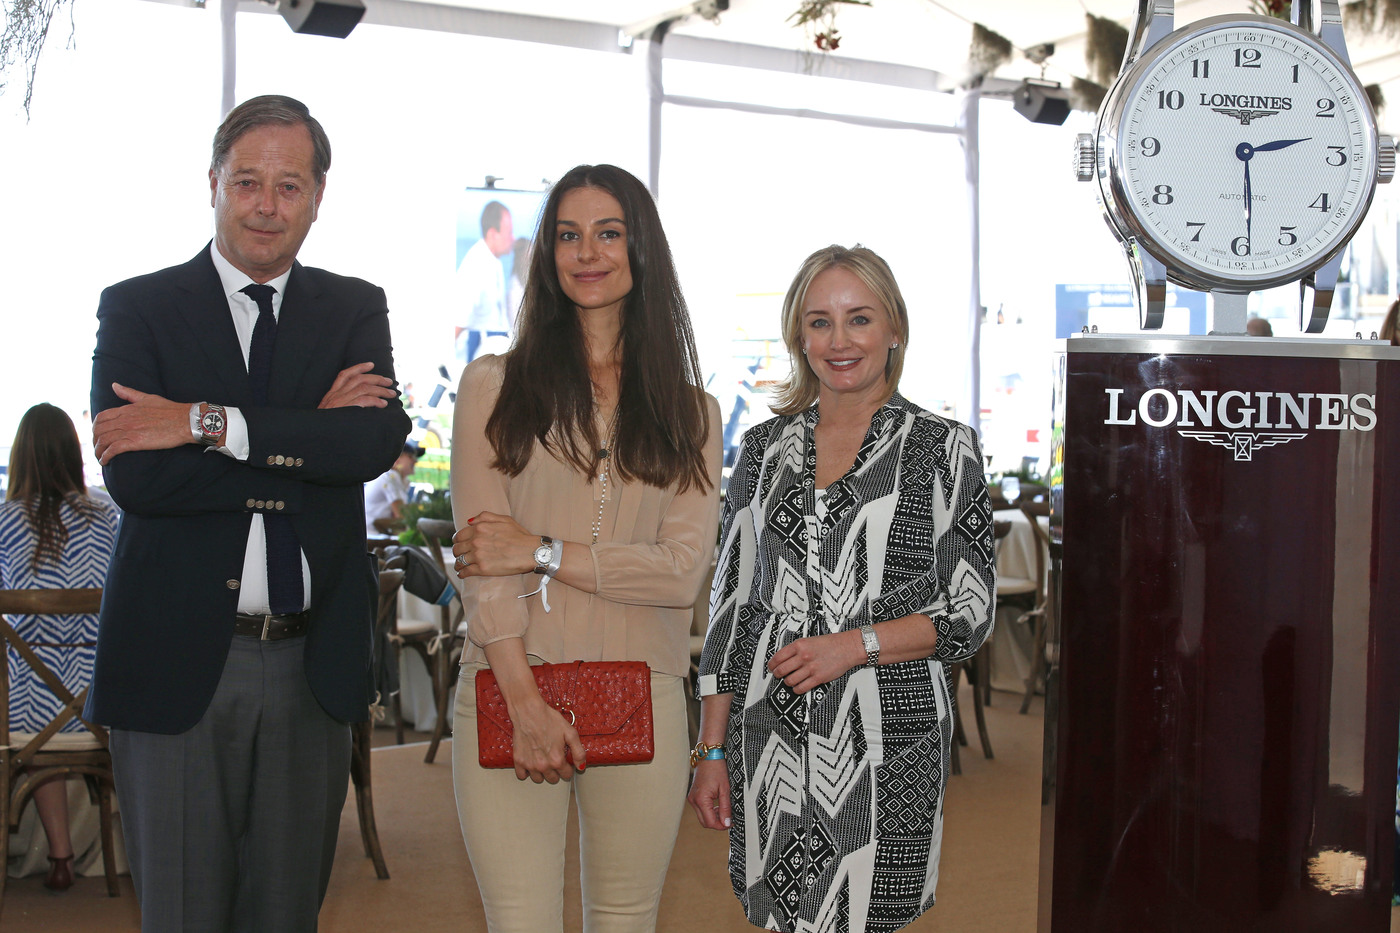 Longines Show Jumping Event: Miami Beach launched the 2016 Longines Global Champions Tour 1